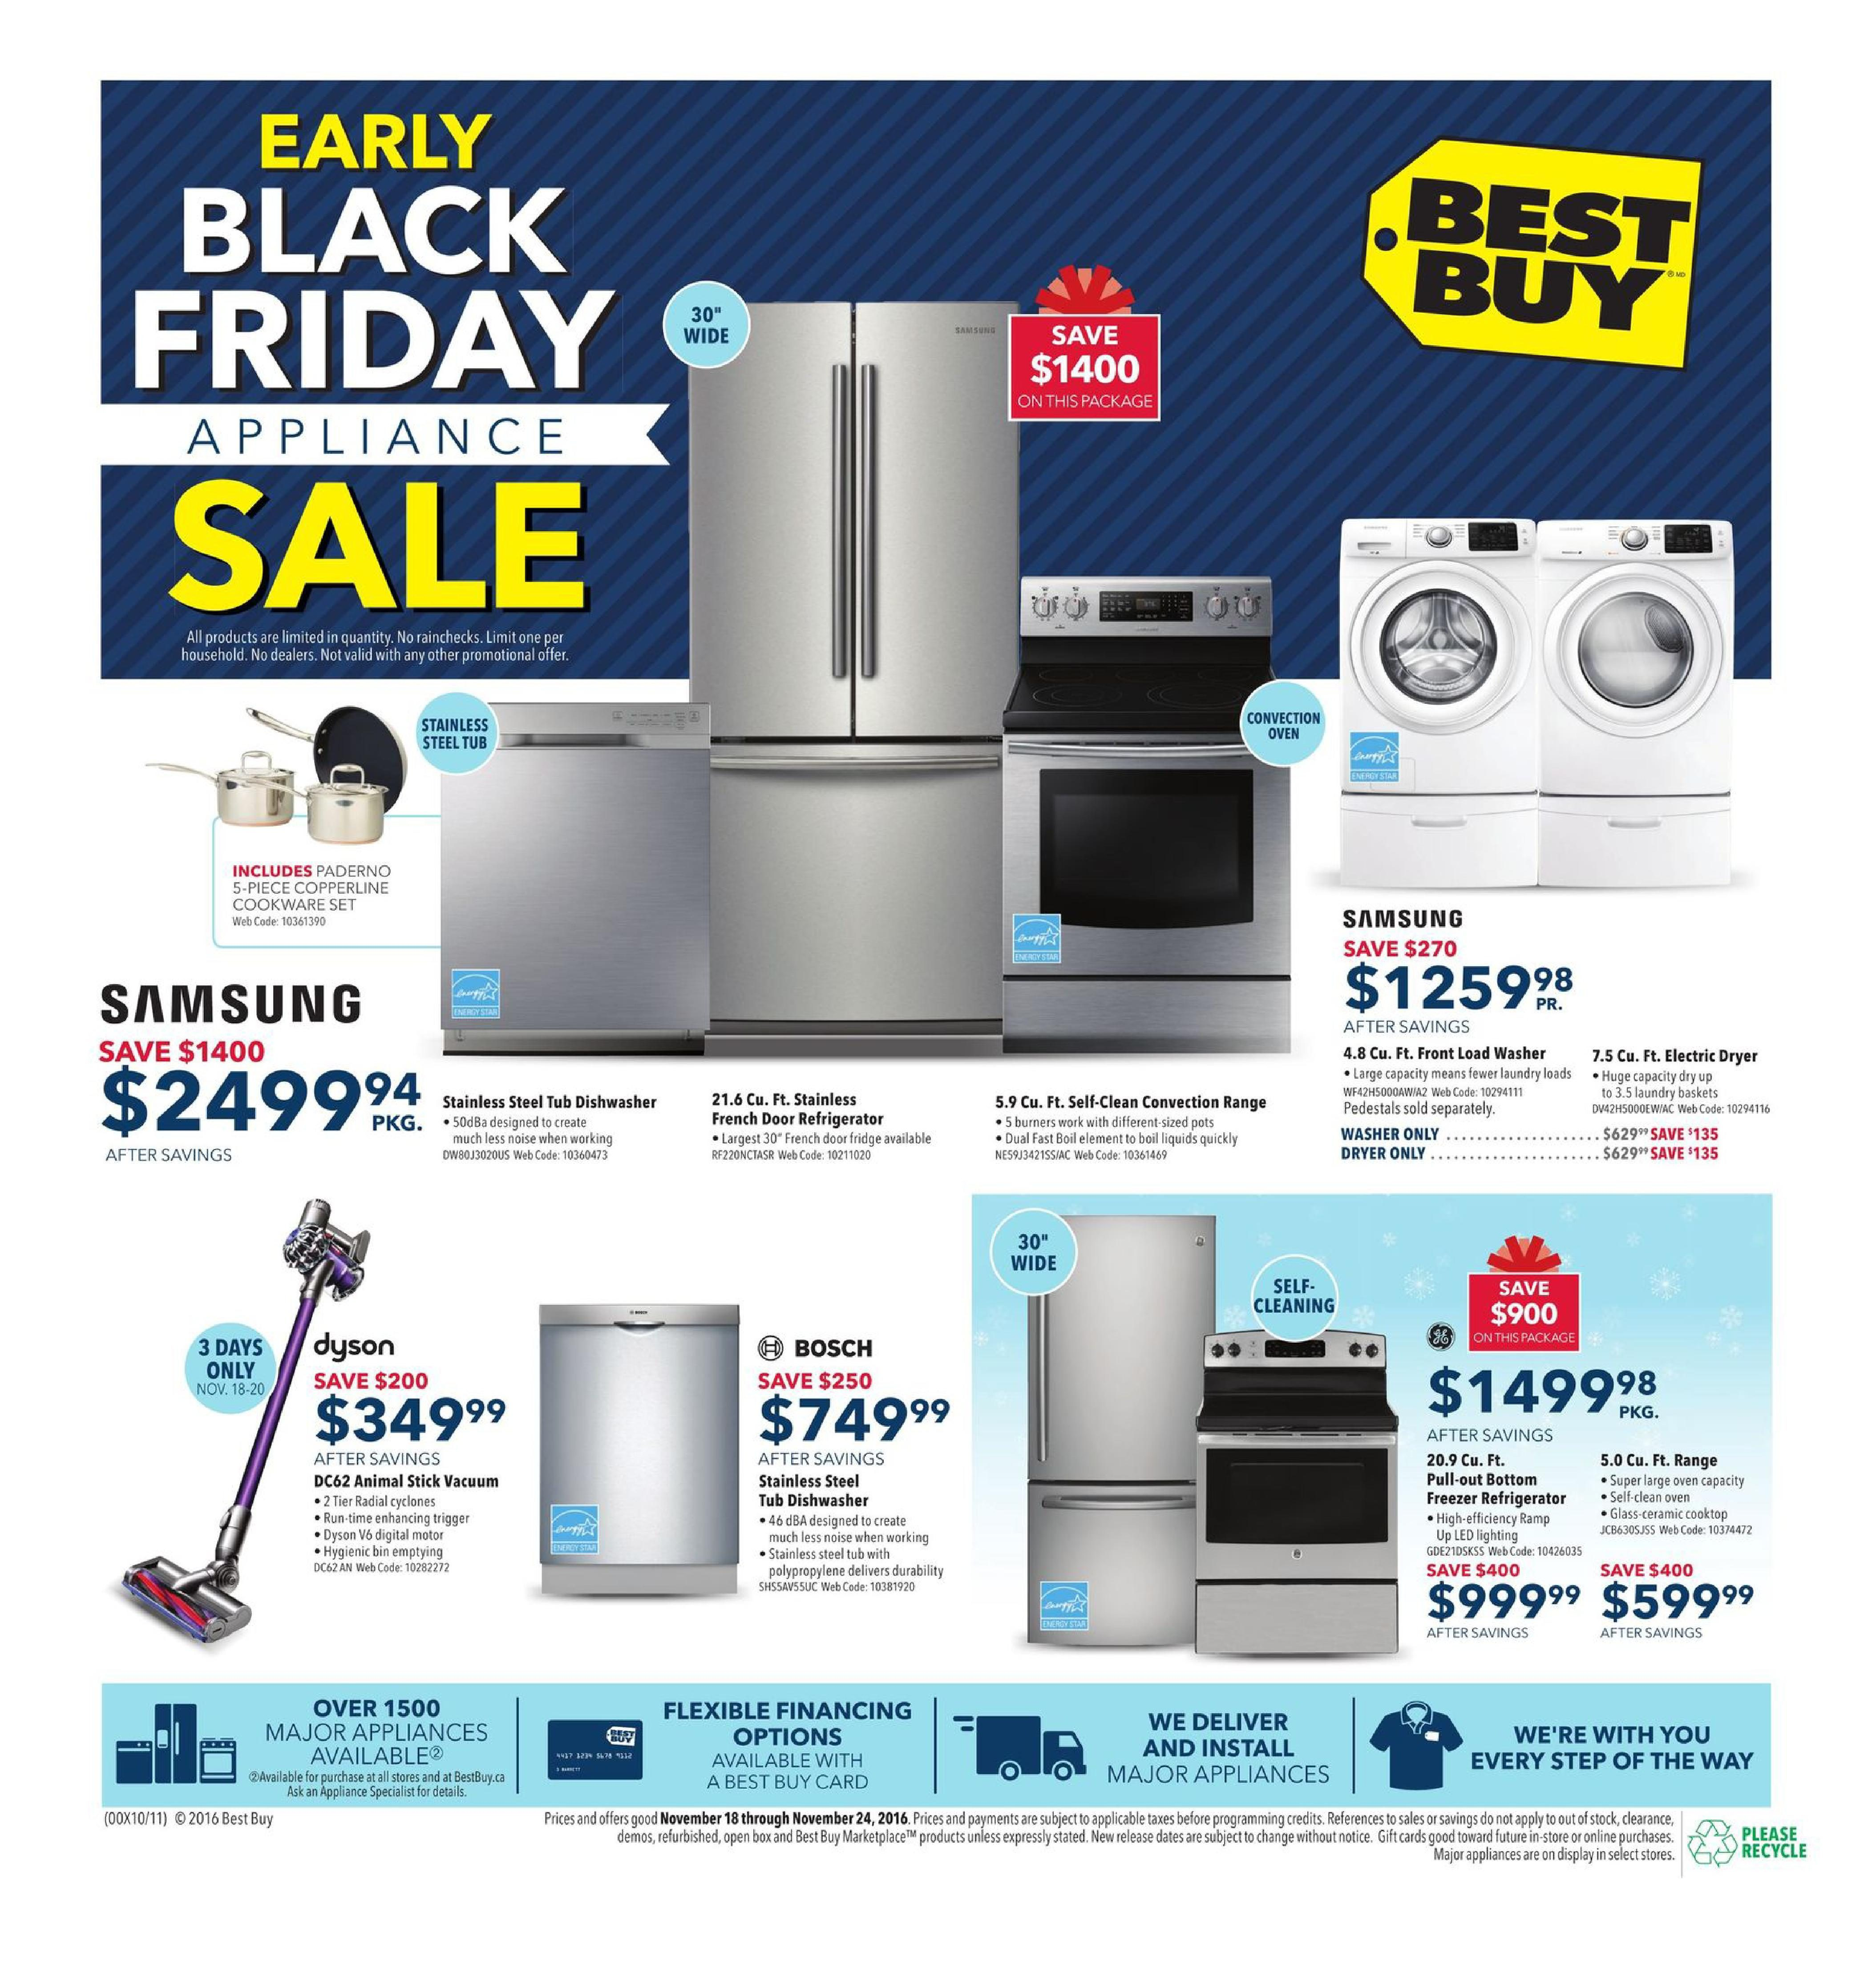 Best buy weekly flyer weekly early black friday appliance sale best buy weekly flyer weekly early black friday appliance sale nov 18 24 redflagdeals fandeluxe Image collections